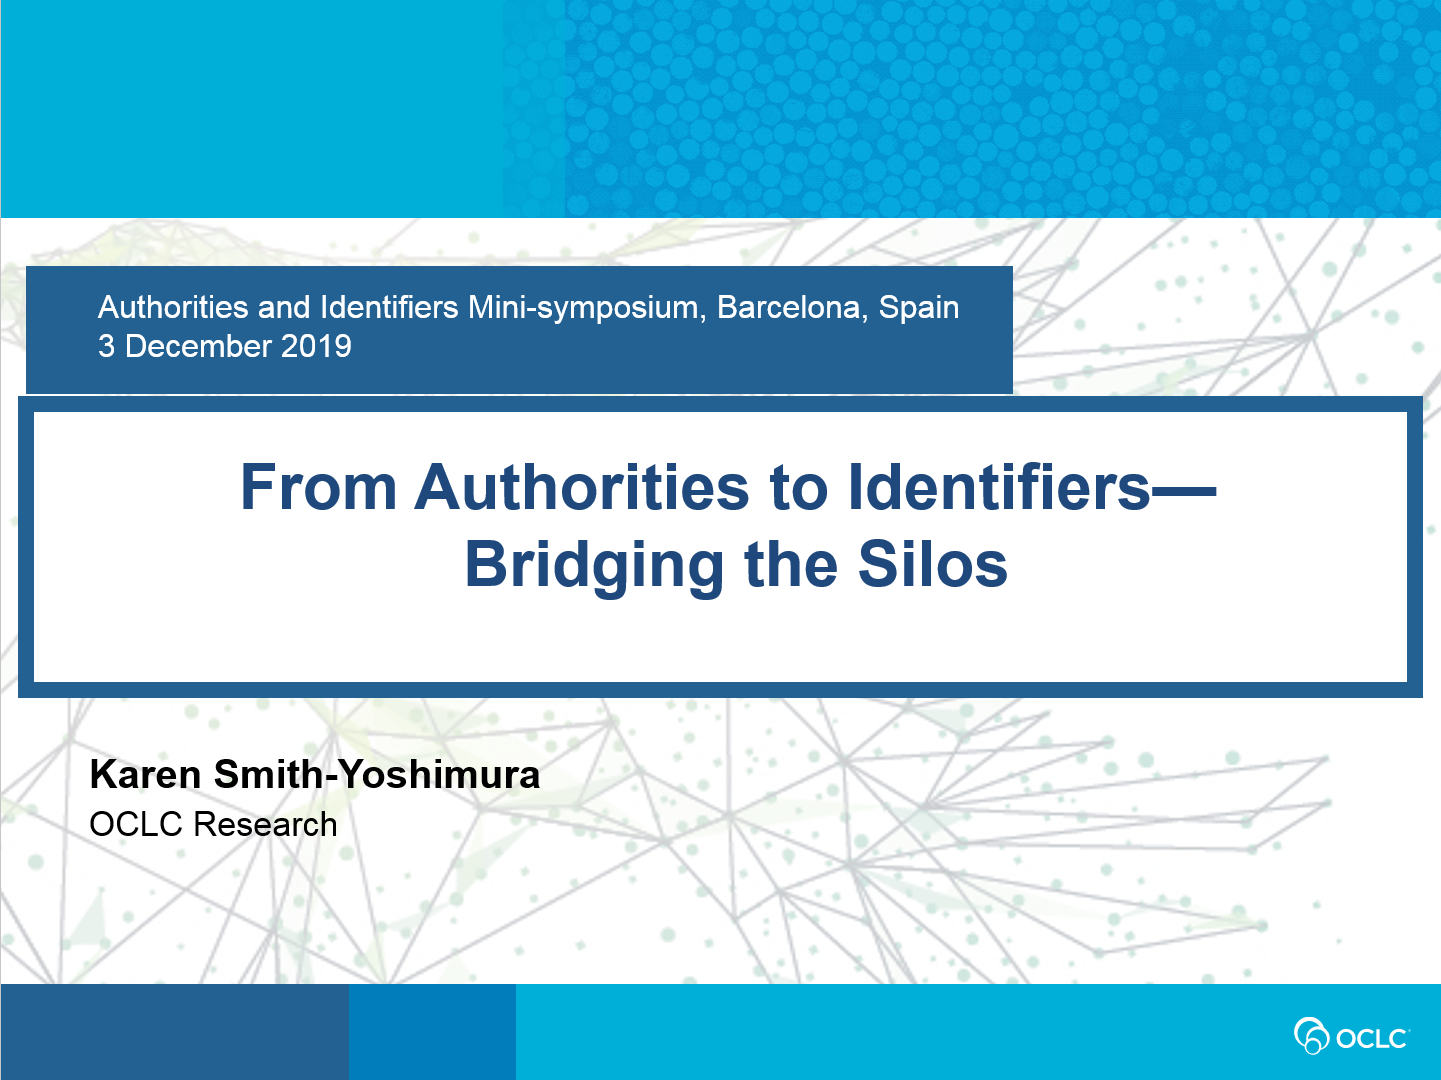 From Authorities to Identifiers—Bridging the Silos